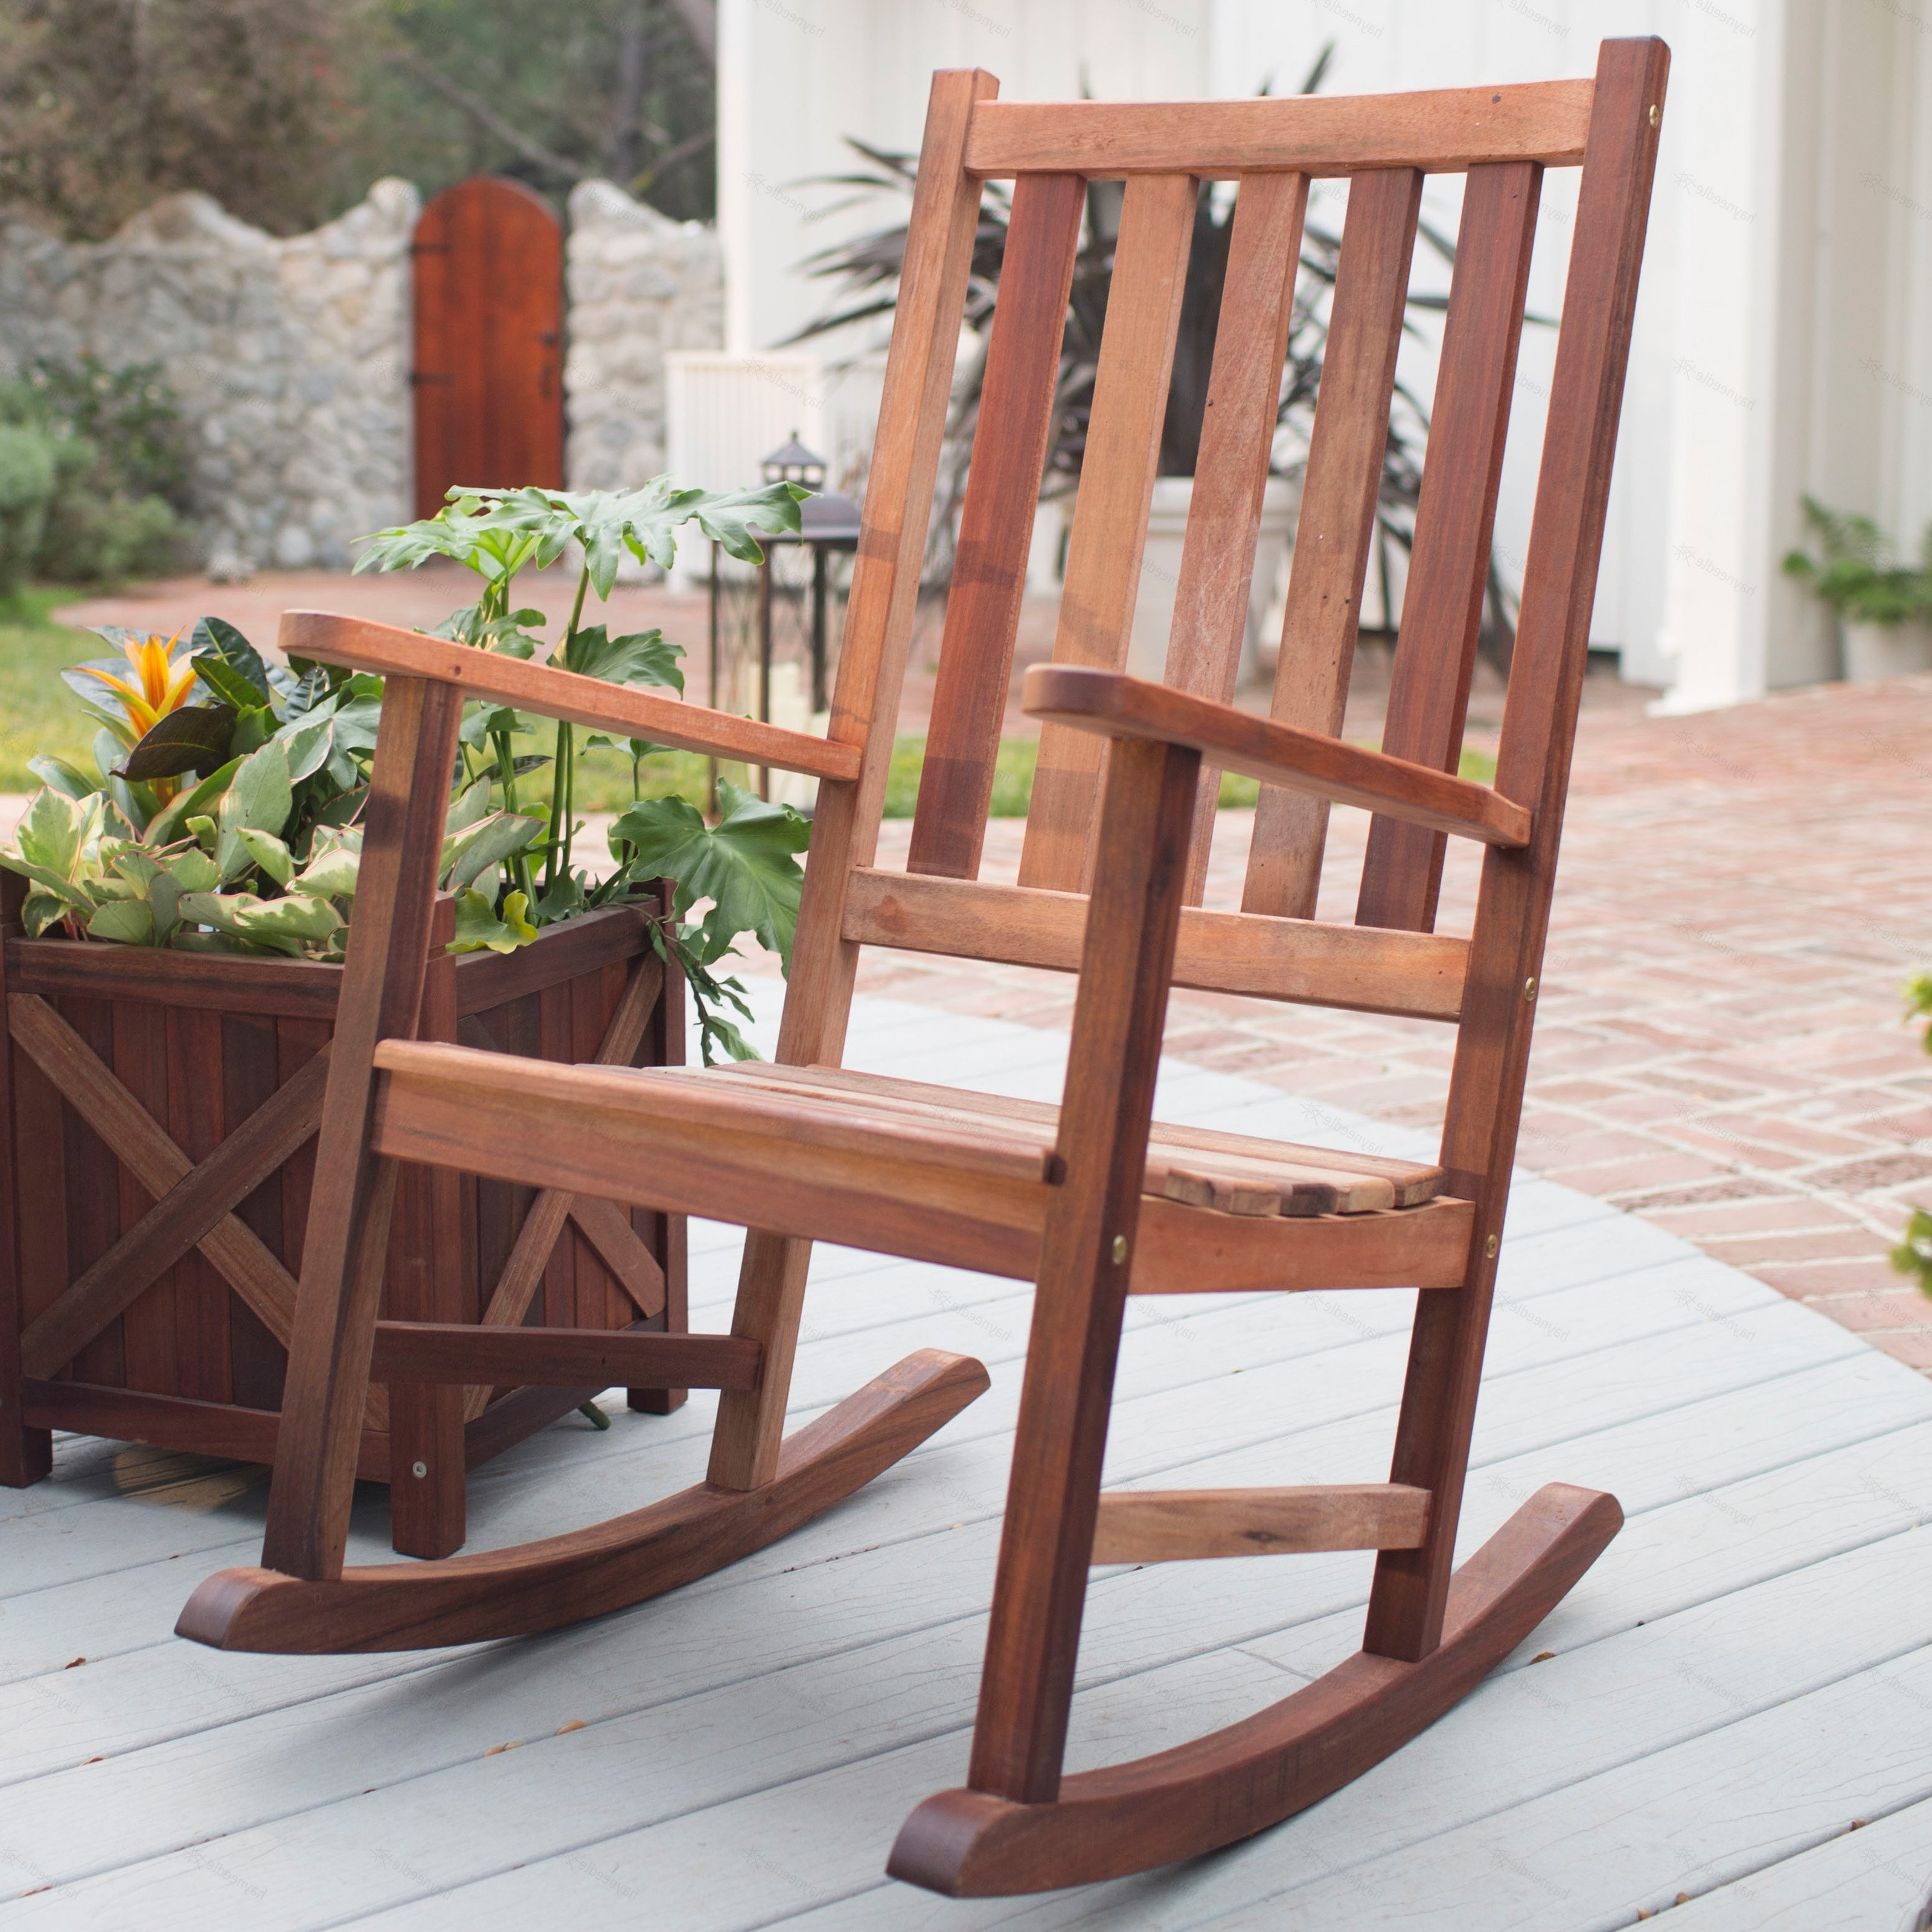 Fashionable Unique Outdoor Rocking Chairs Intended For Enjoy A Comfortable Swing With Rocking Chair – Bellissimainteriors (View 1 of 15)